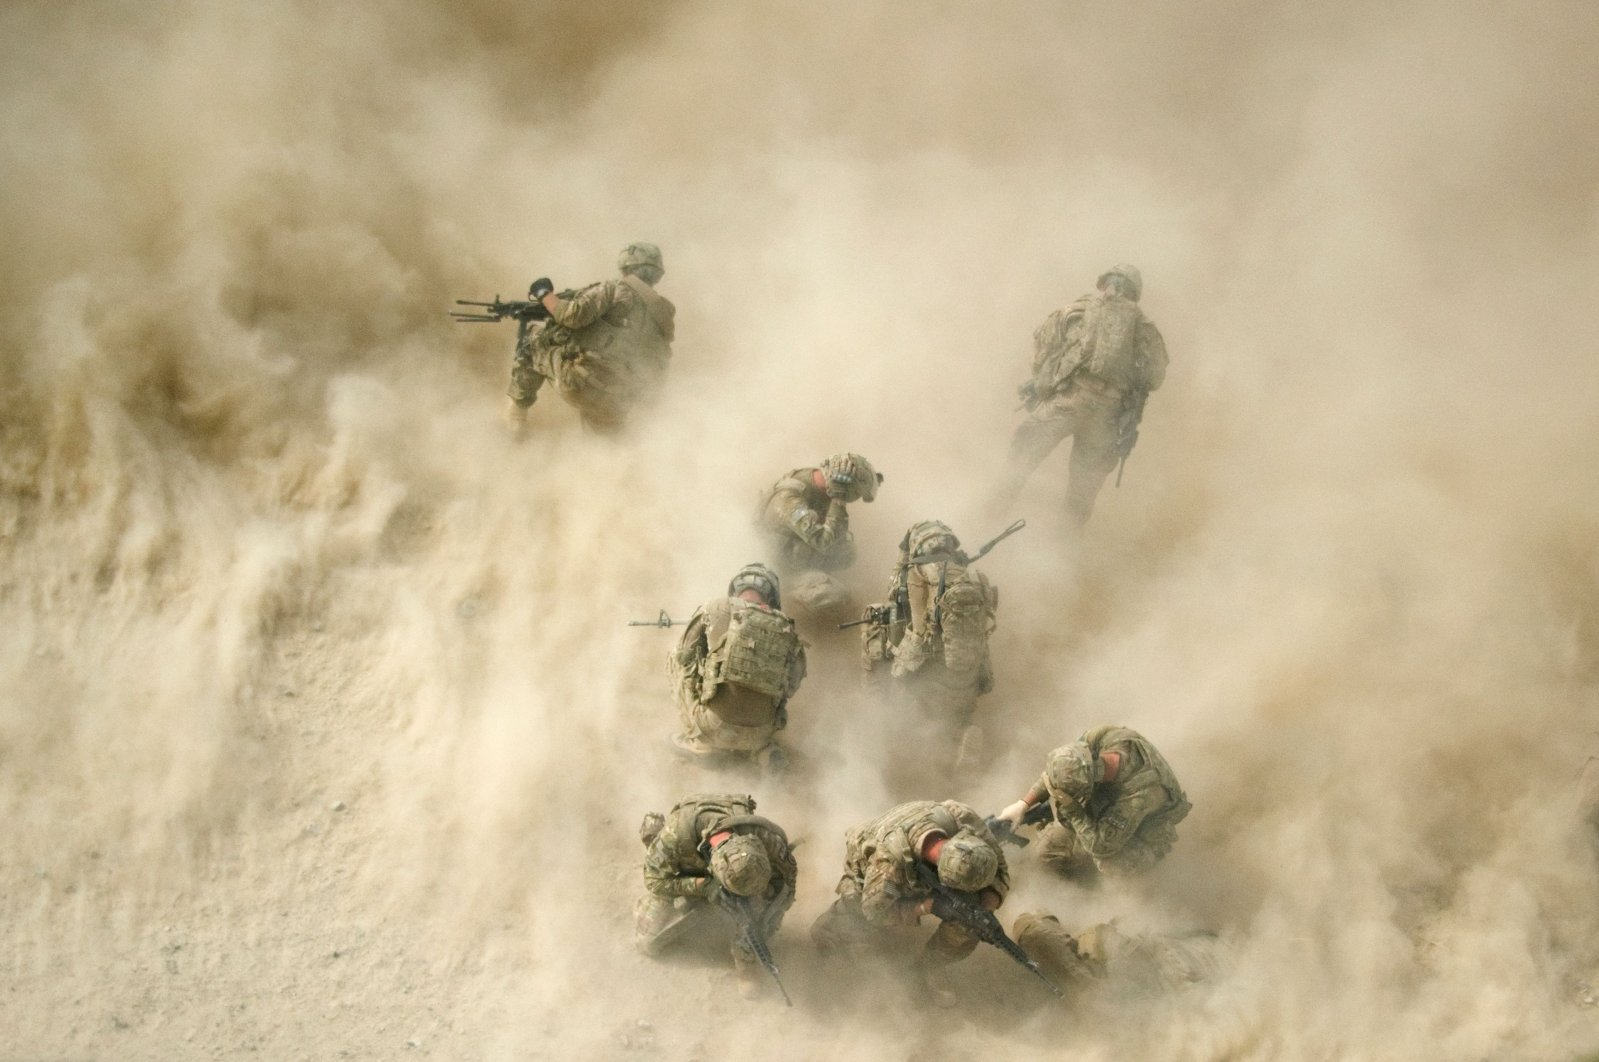 U.S. soldiers gather near a destroyed vehicle and protect their faces from rotor wash, as their wounded comrades are airlifted by a Medevac helicopter from the 159th Brigade Task Force Thunder to Kandahar Hospital Role 3, Aug. 23, 2011. (AFP Photo)